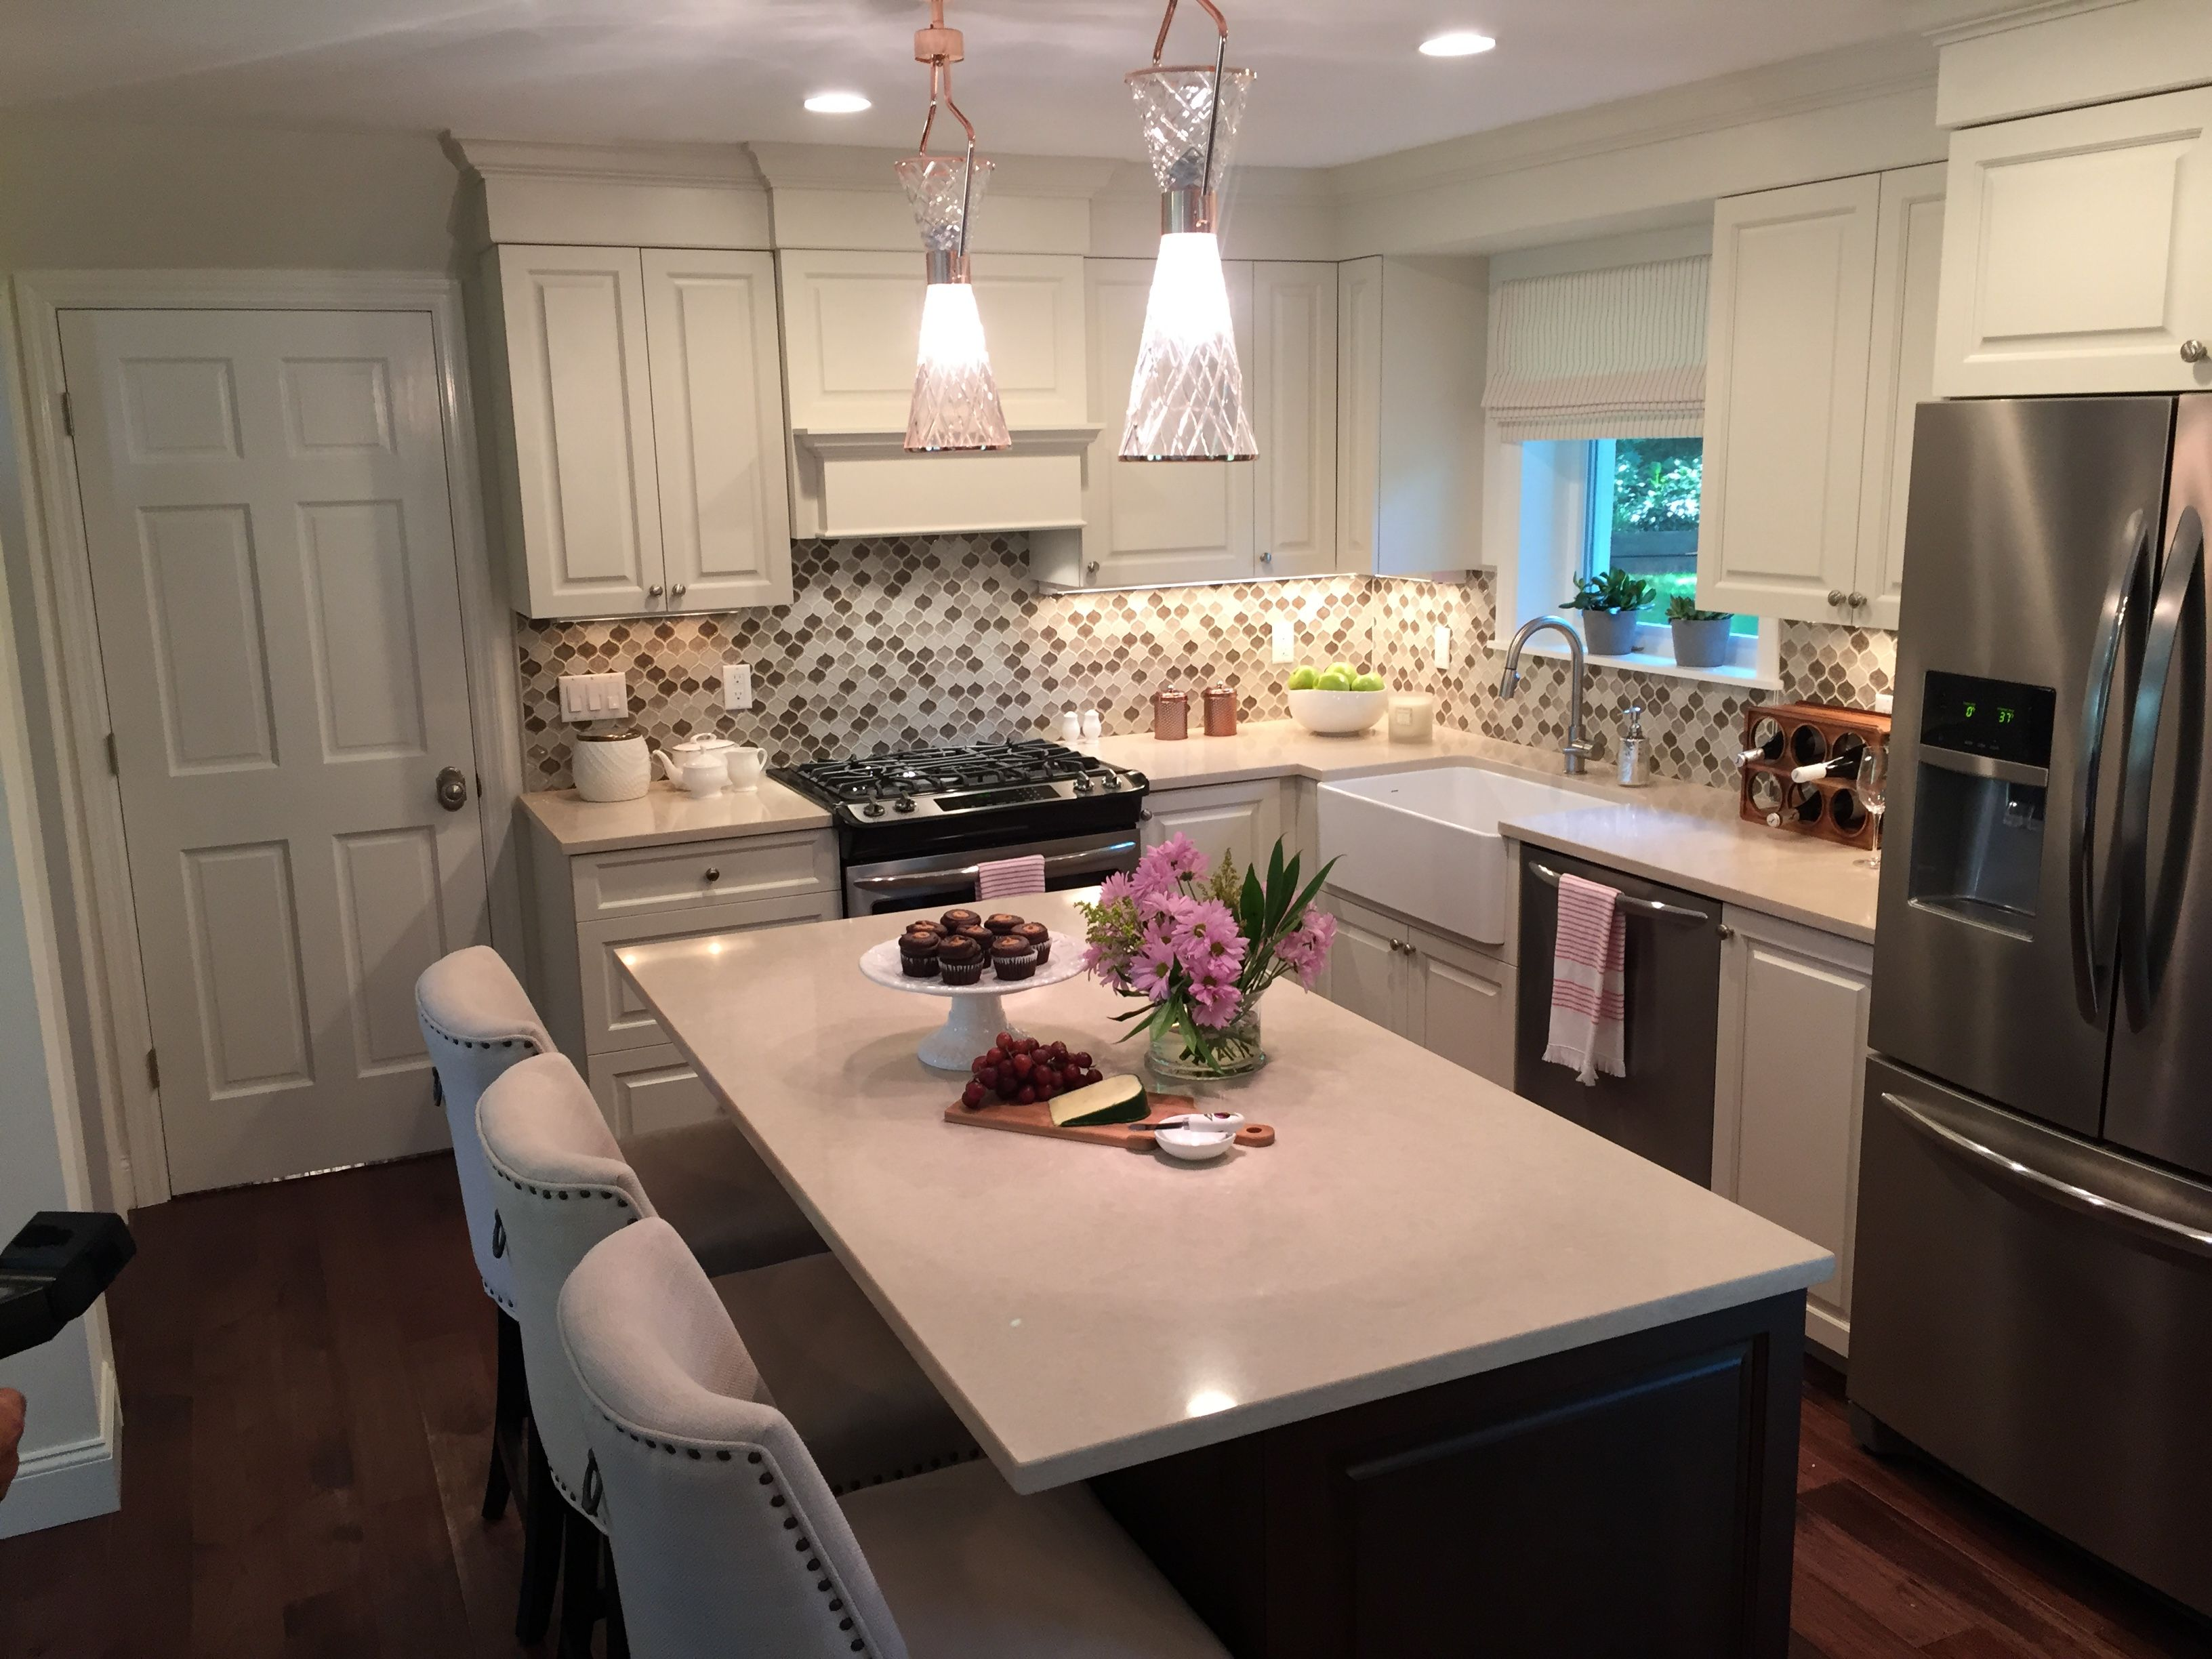 Kitchen Cabinet Knobs Atlanta Ga Property Brothers Kitchen With Cabinet Hardware By Emtek From Hgtv